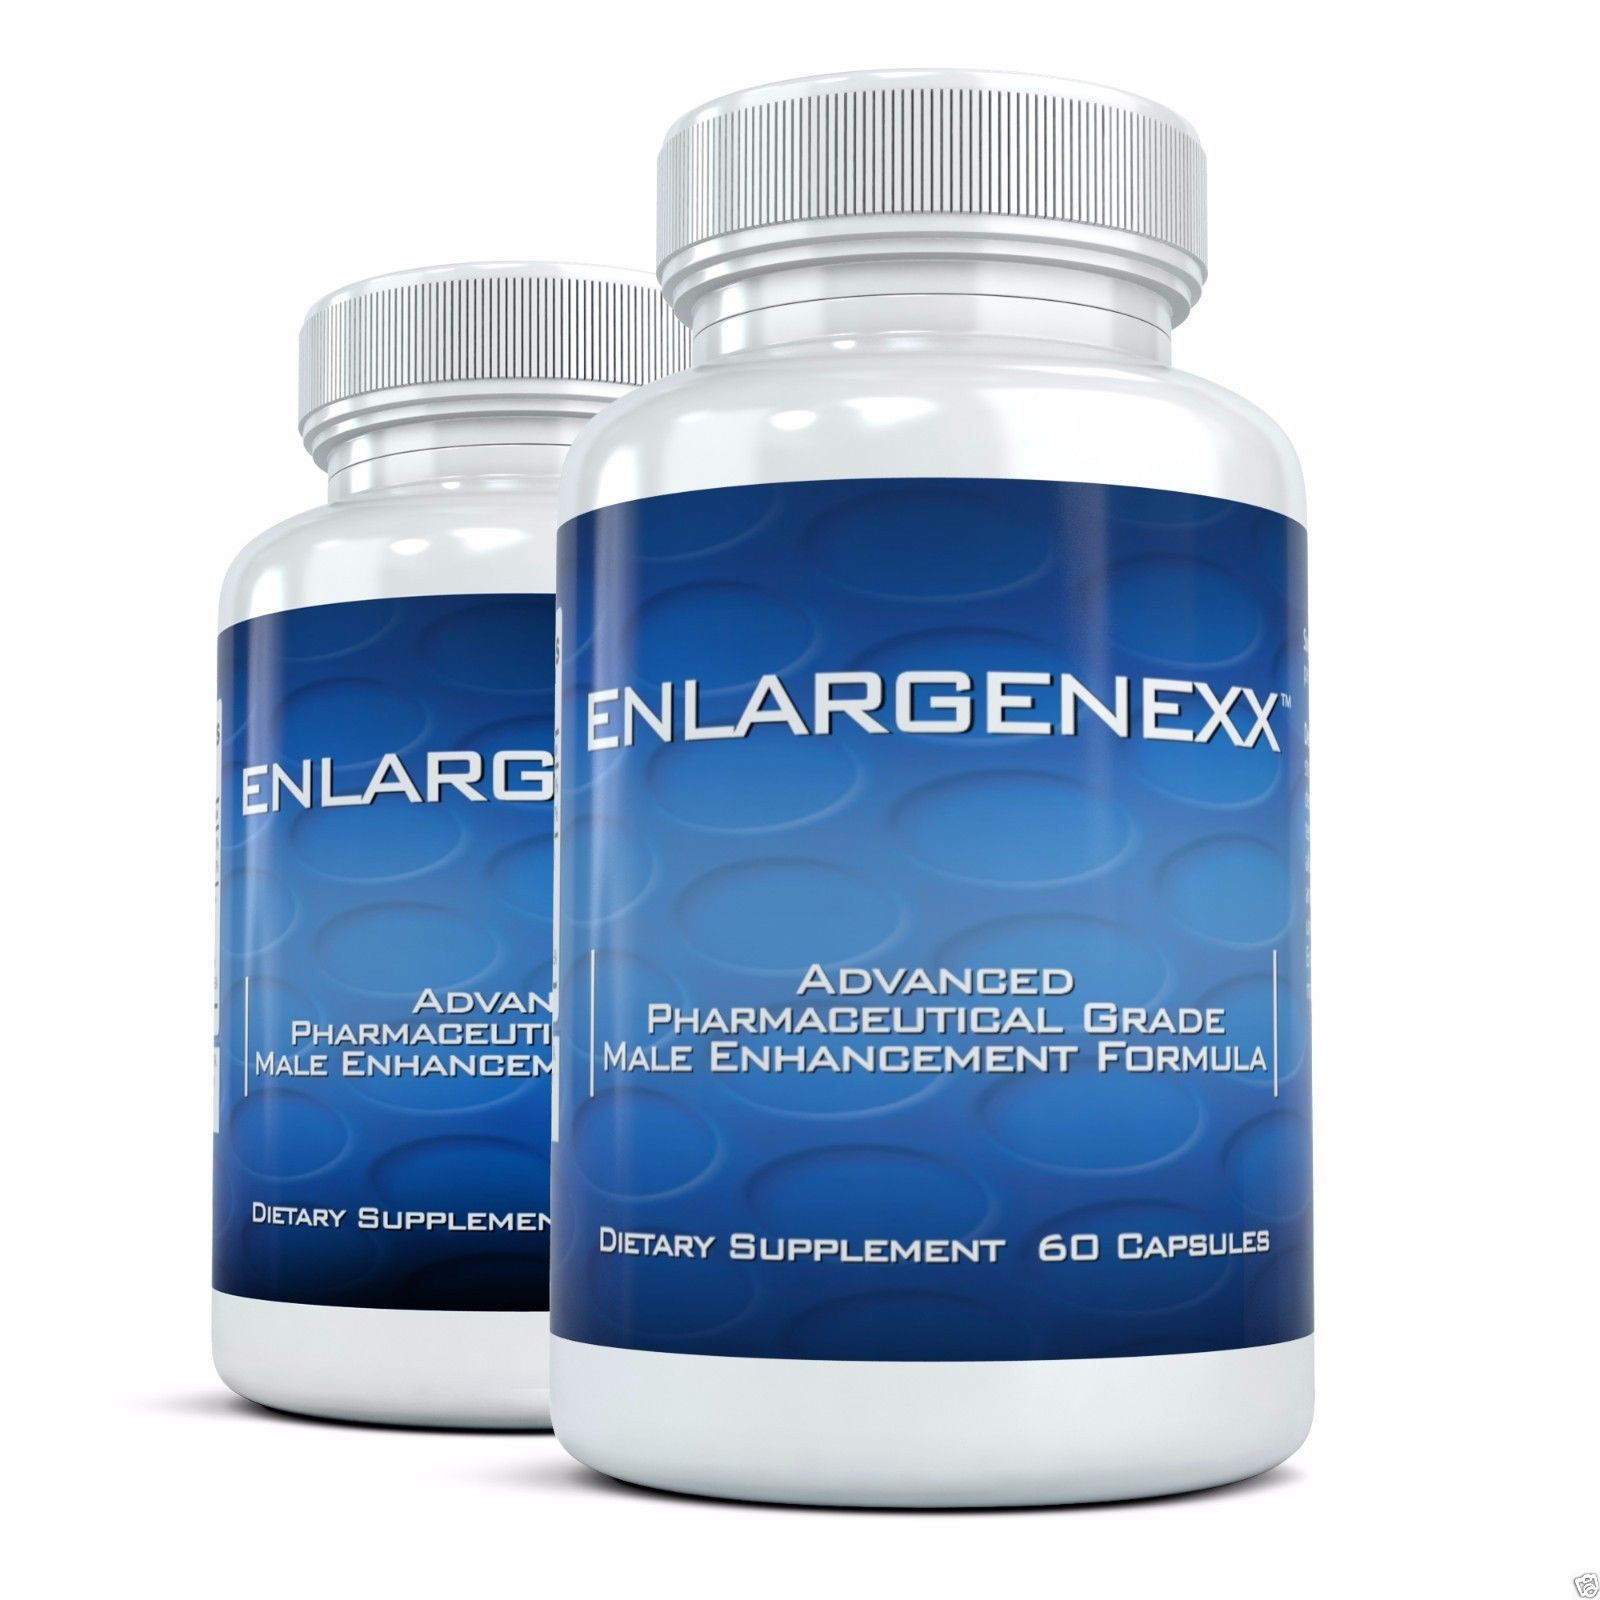 2x ENLARGENEXX #1 Male Enhancement Pills for Growth ...